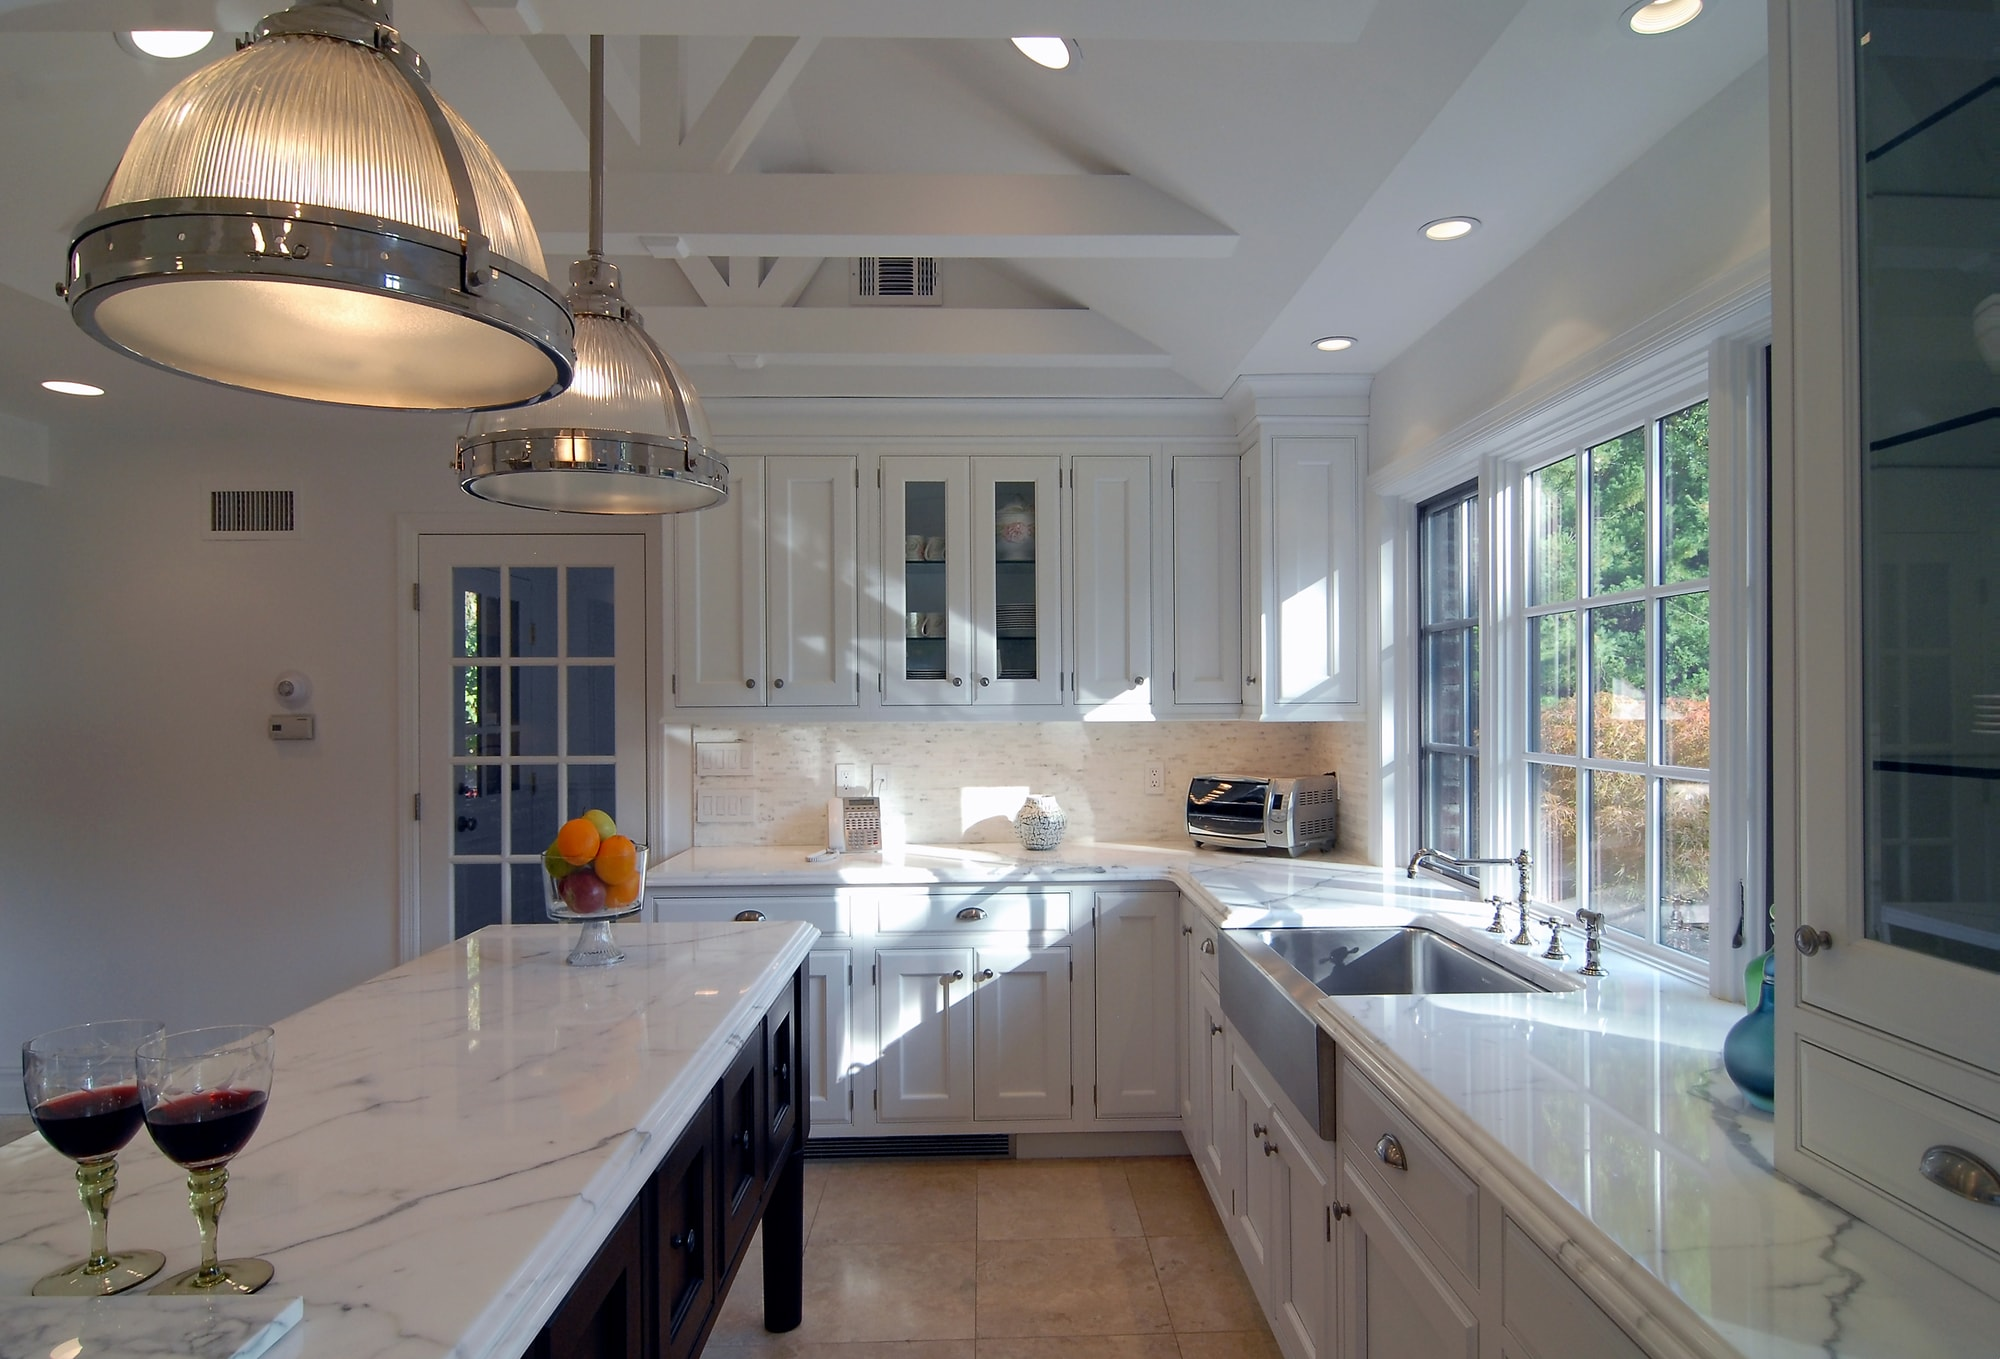 Transitional style kitchen with two modern light fixtures